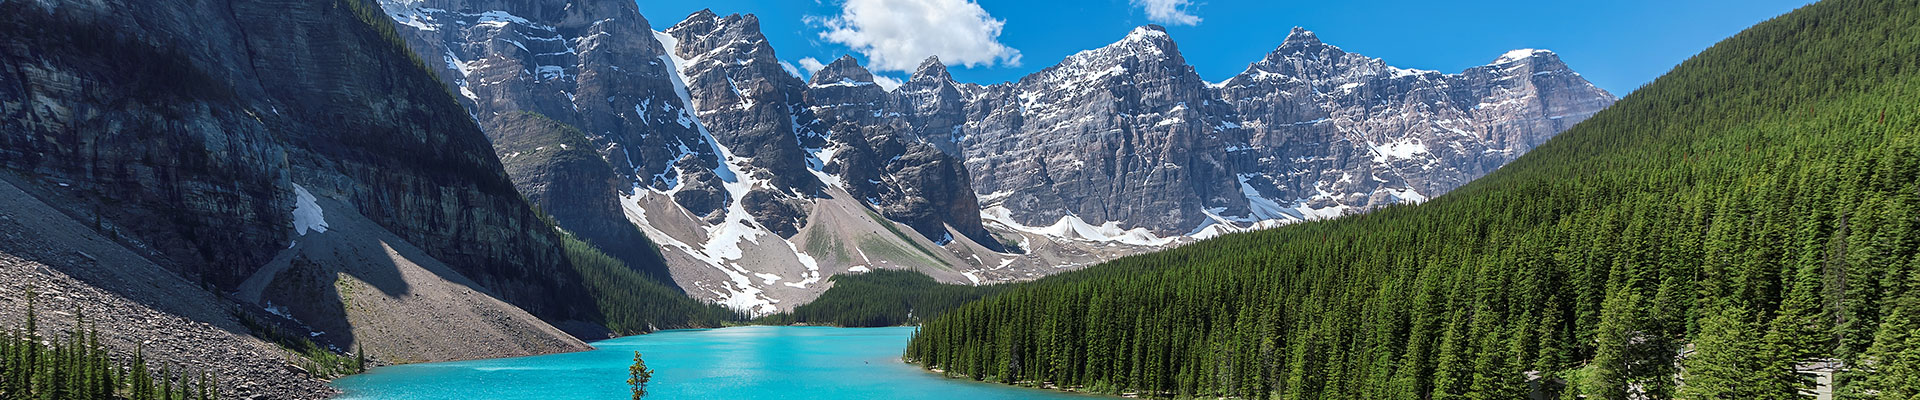 Fantasy RV Tours: 40 Day Canada Land & Sea (40CLSP-081823)